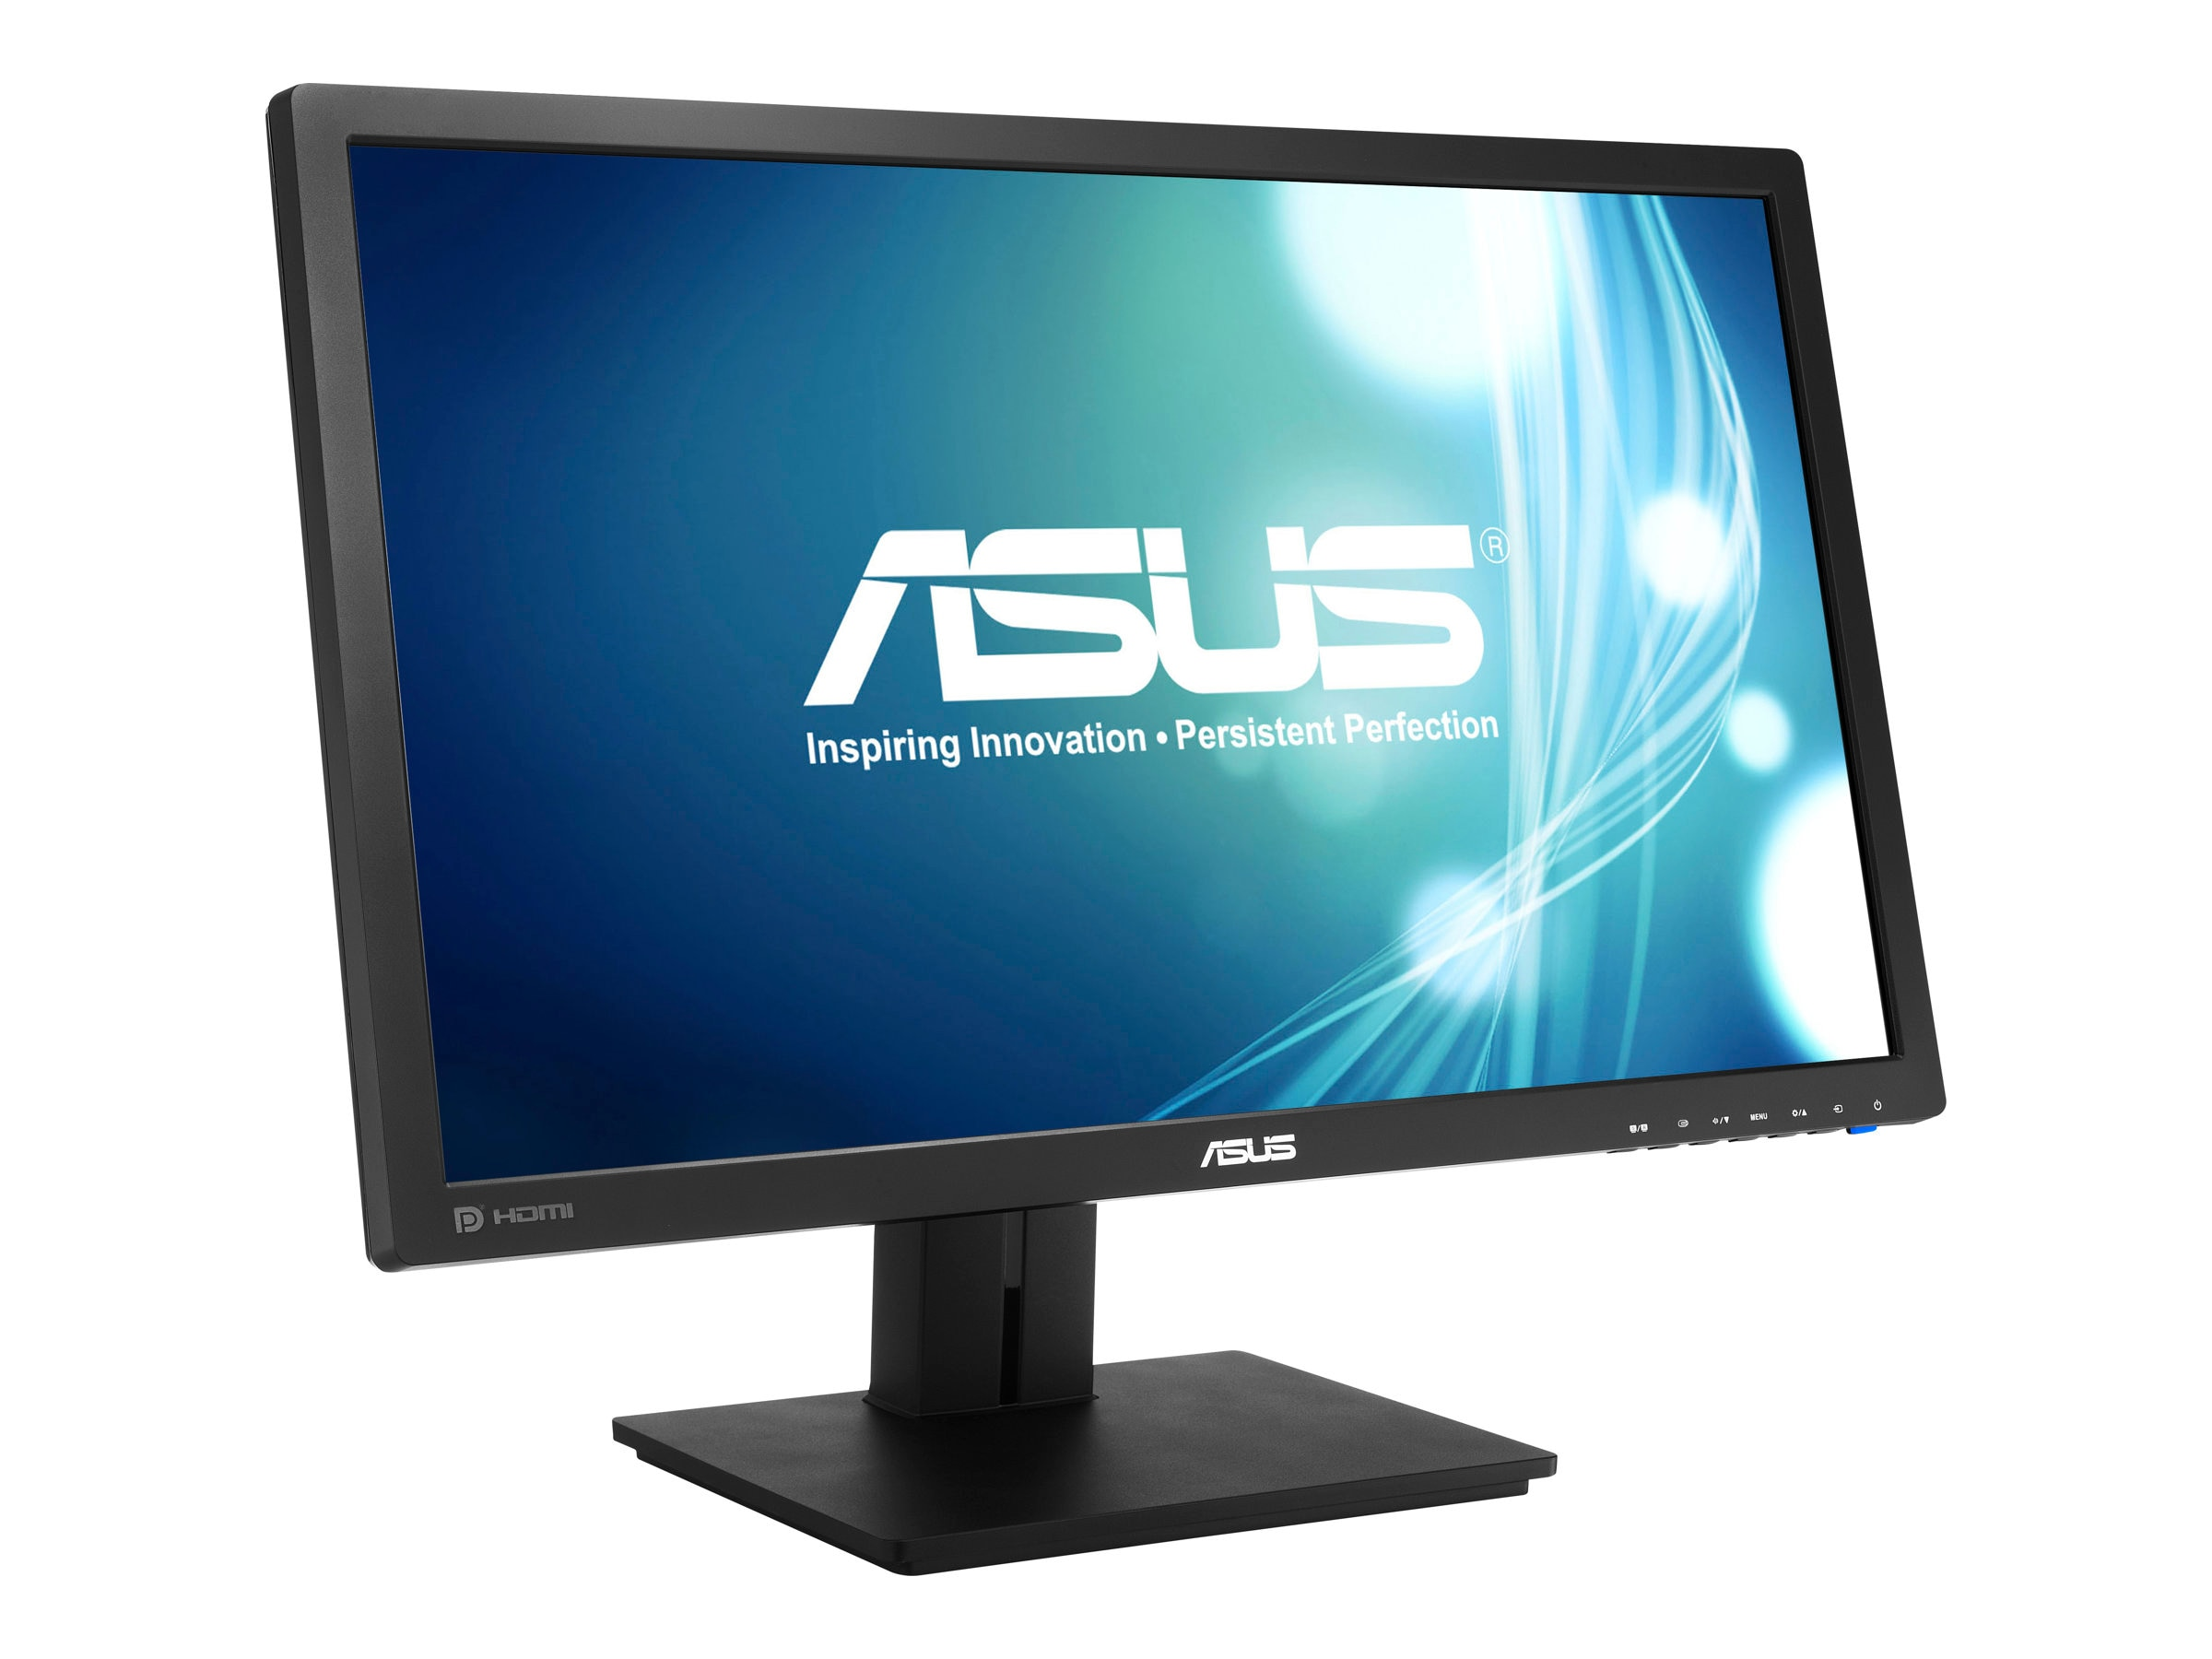 Asus 27 PB278Q LED-LCD Monitor, Black, PB278Q